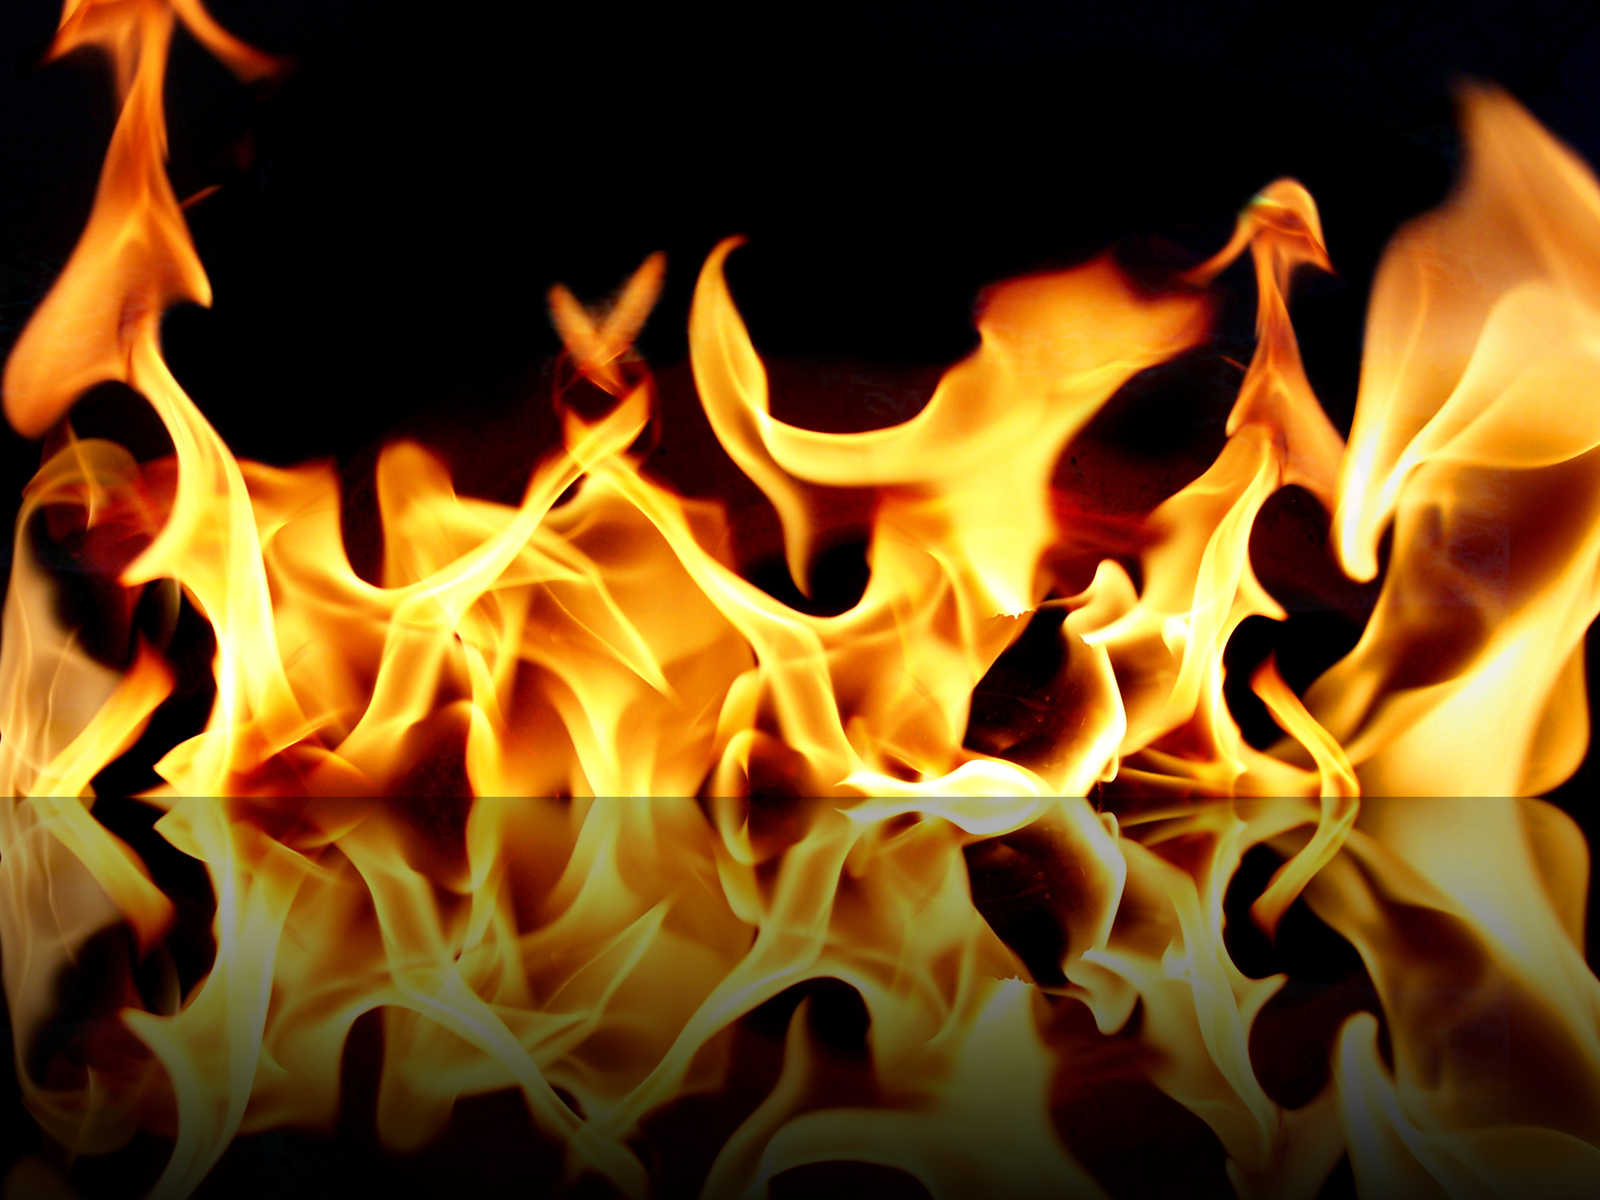 1600x1200 Fire reflection desktop wallpapers and stock photos